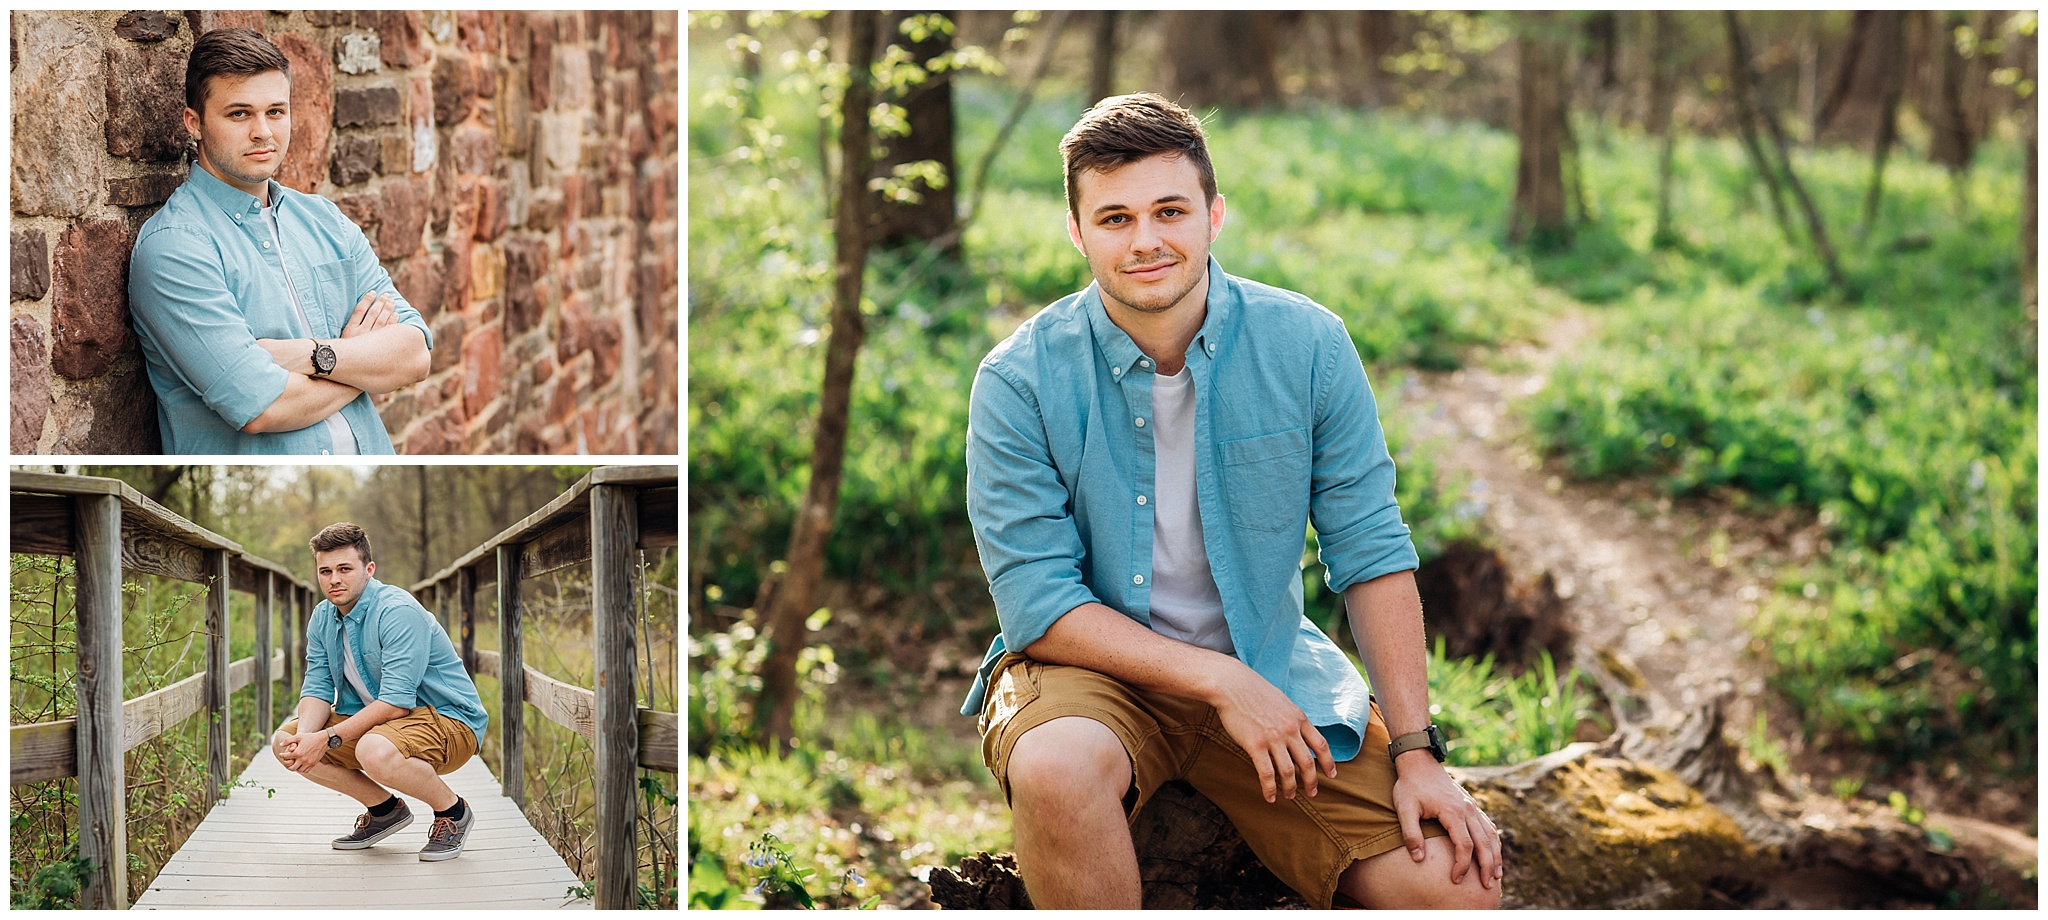 High School Senior guy collage of images from local Senior Photographer near Gainesville VA